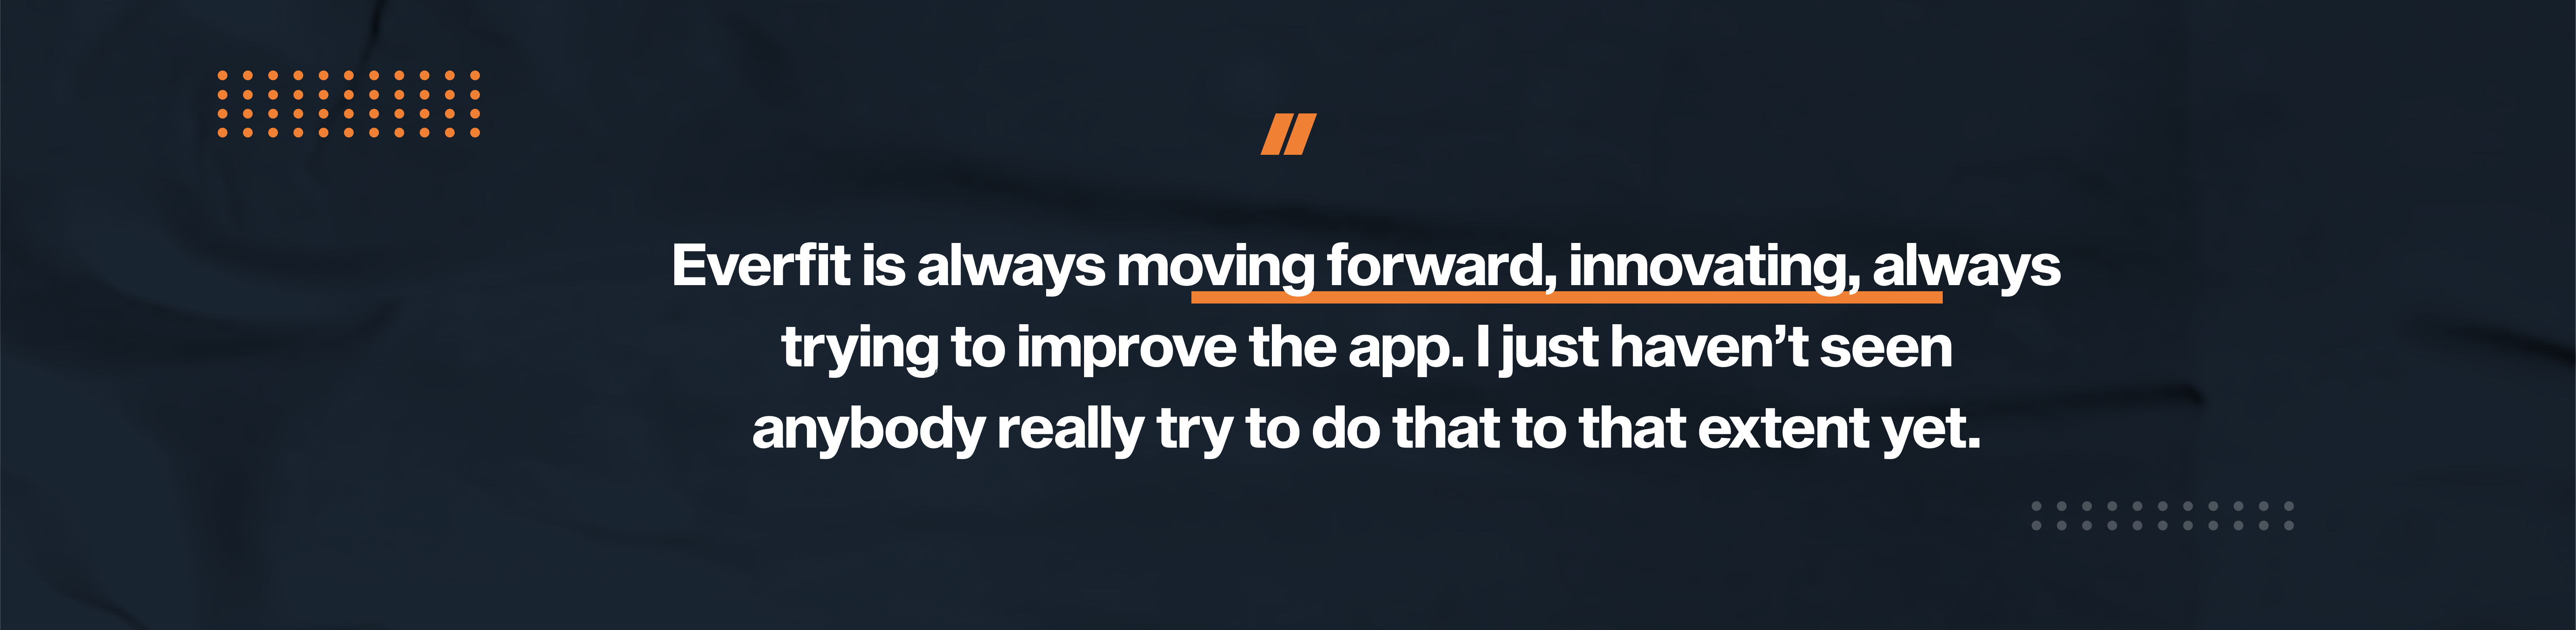 Patryk states that Everfit is always moving forward and trying to improve the app to help online training business success